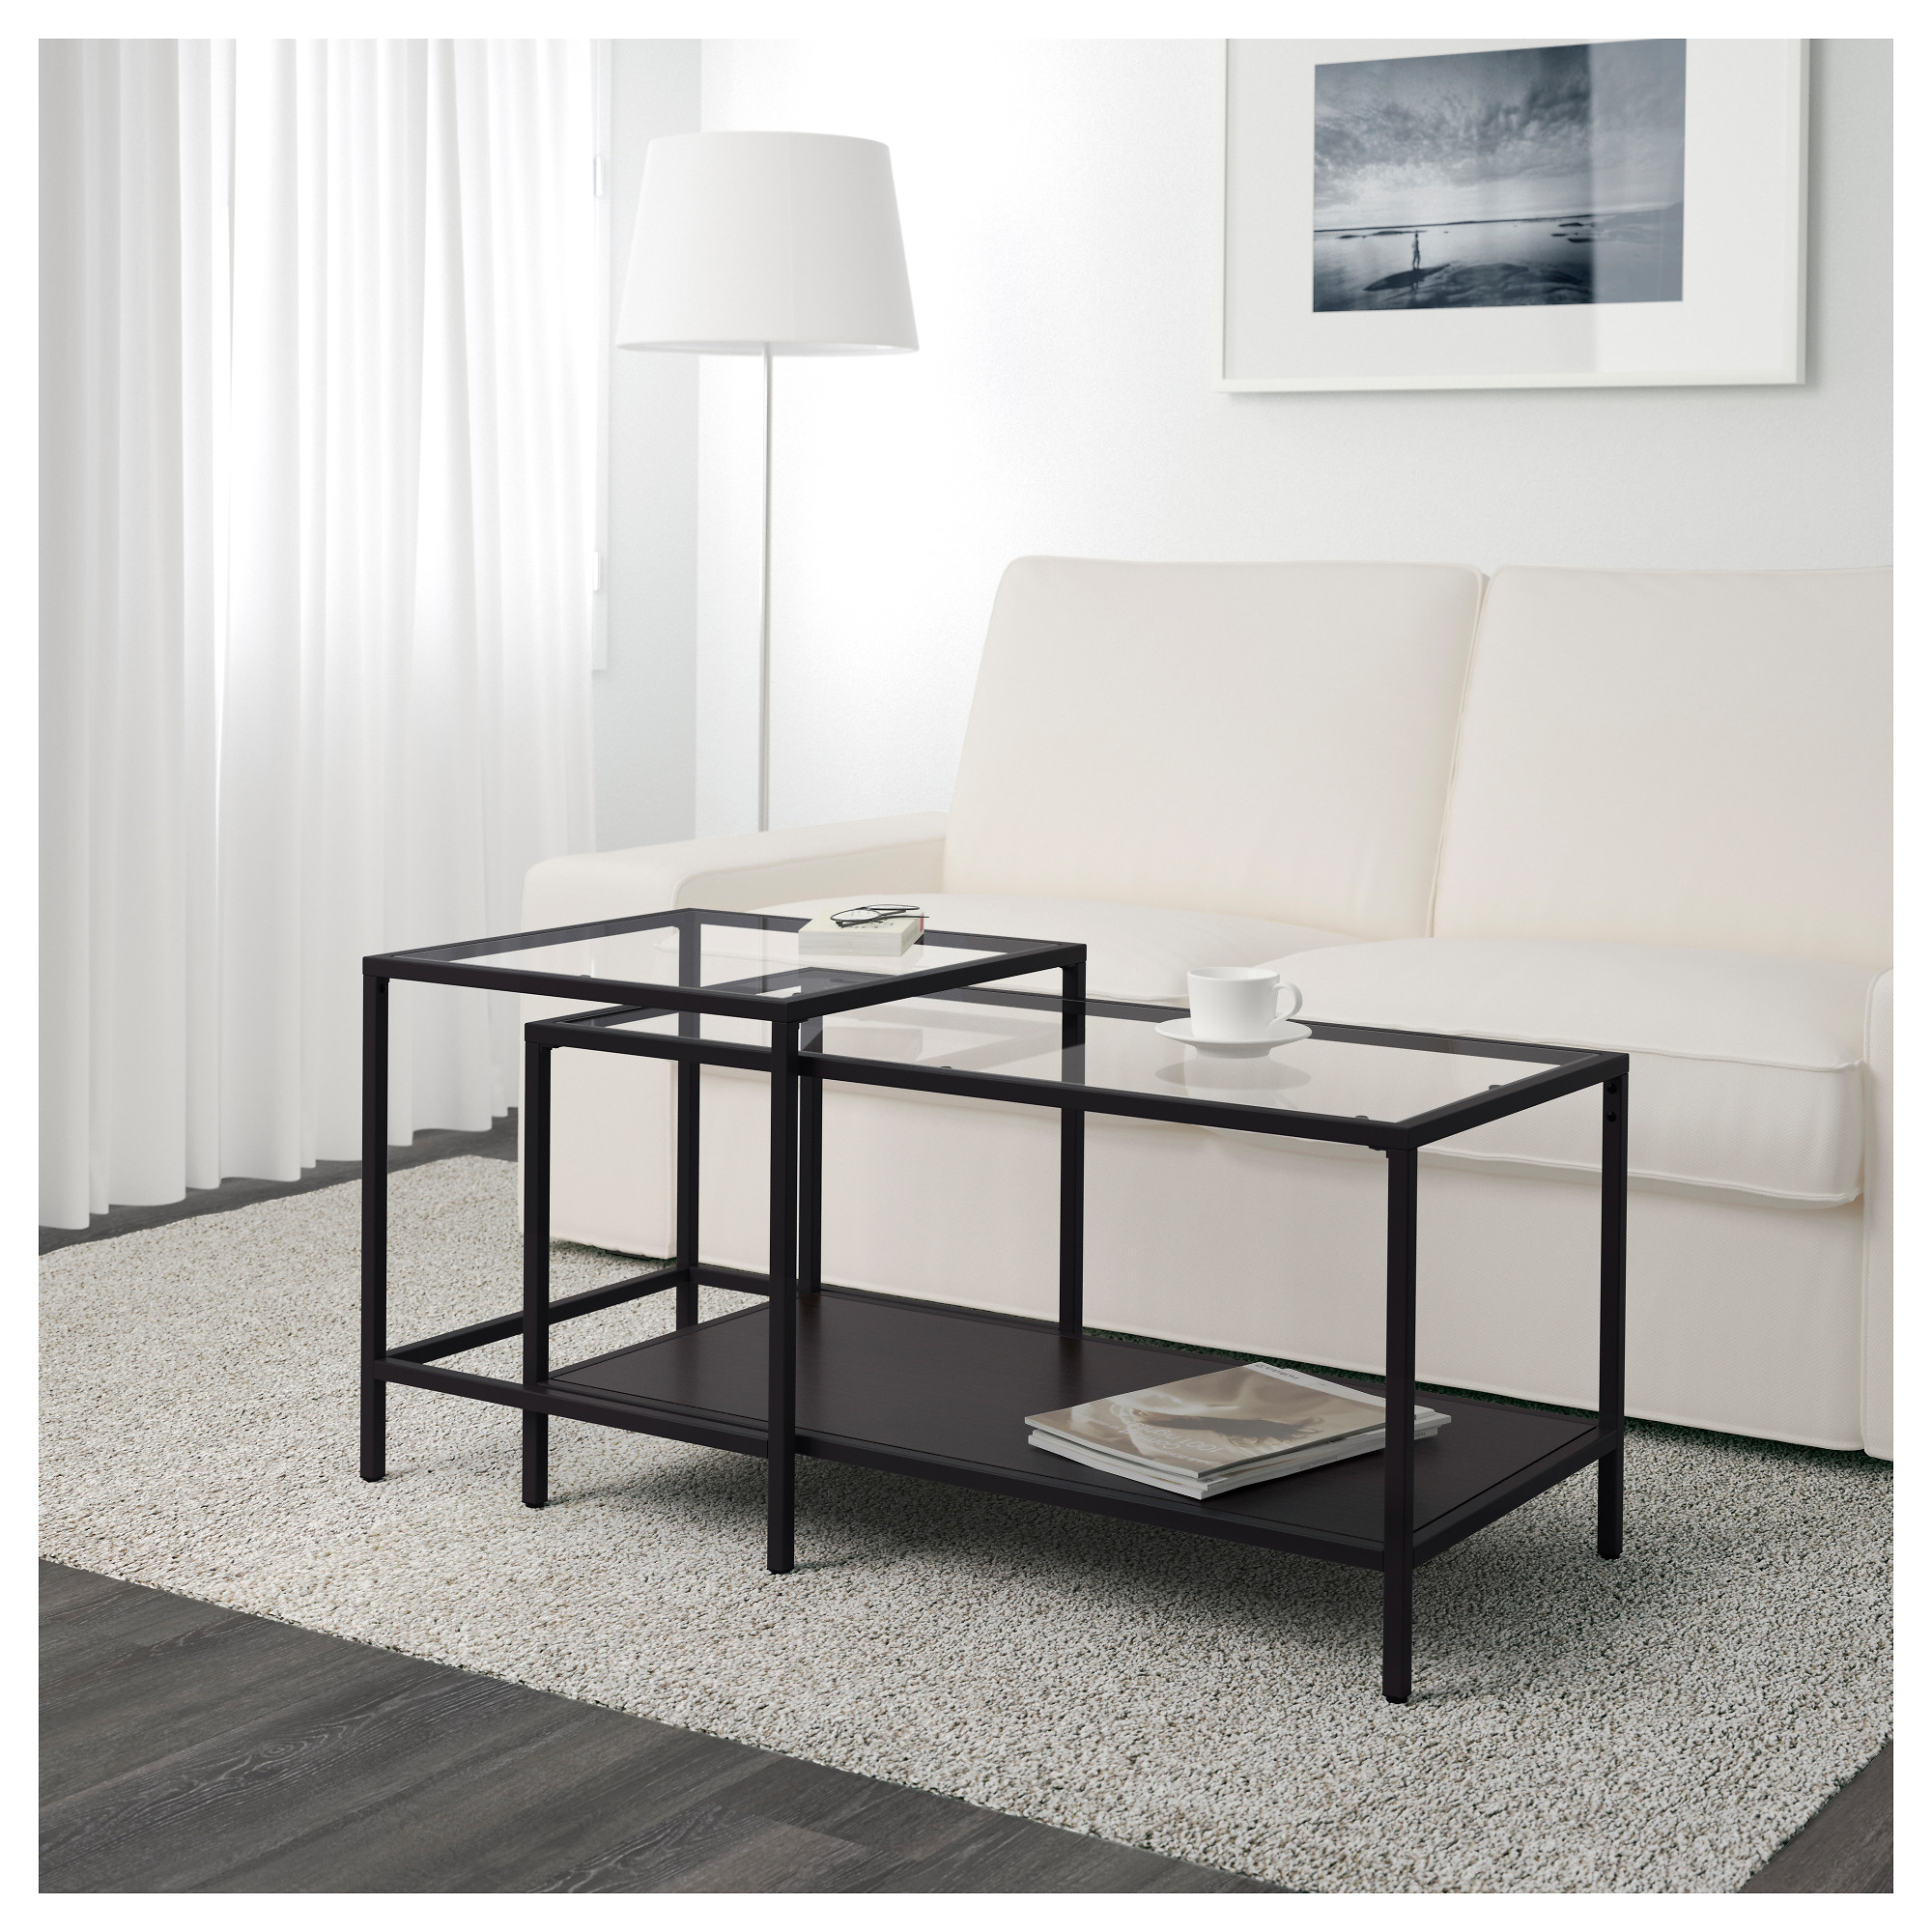 VITTSJÖ Nesting Tables, Set Of 2   Black Brown/glass   IKEA